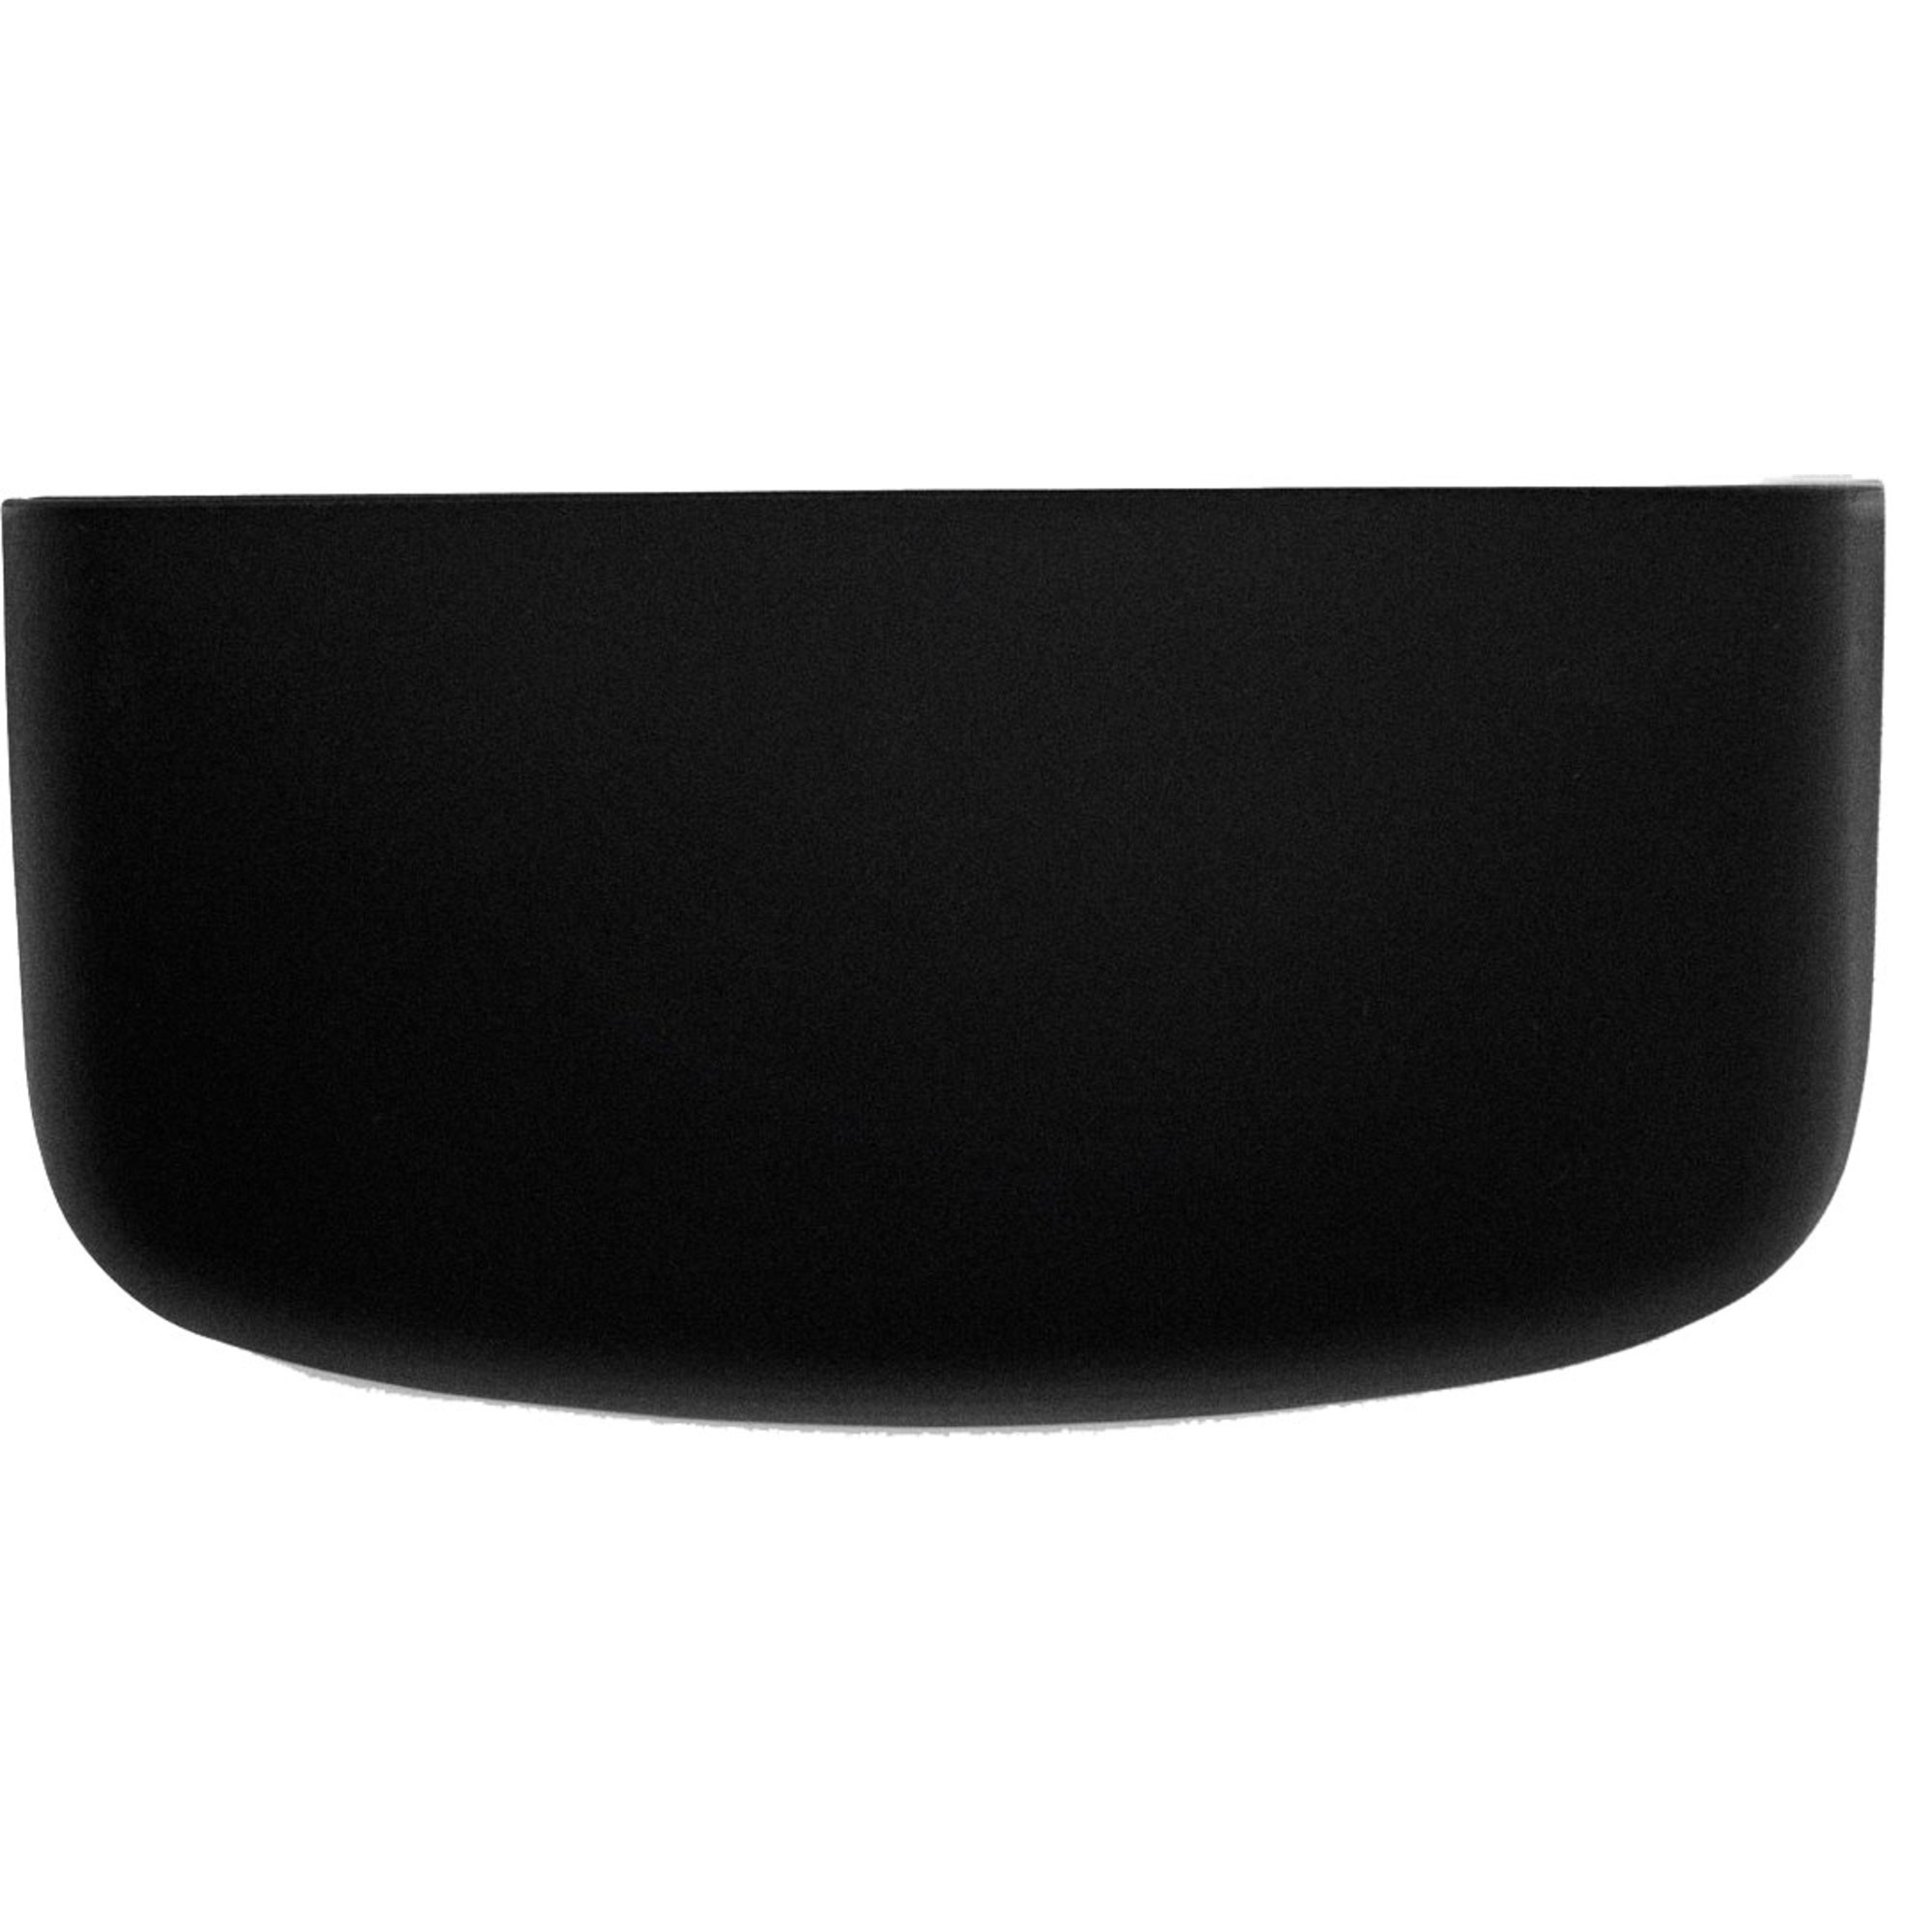 Normann Copenhagen Pocket Organizer 1 Black